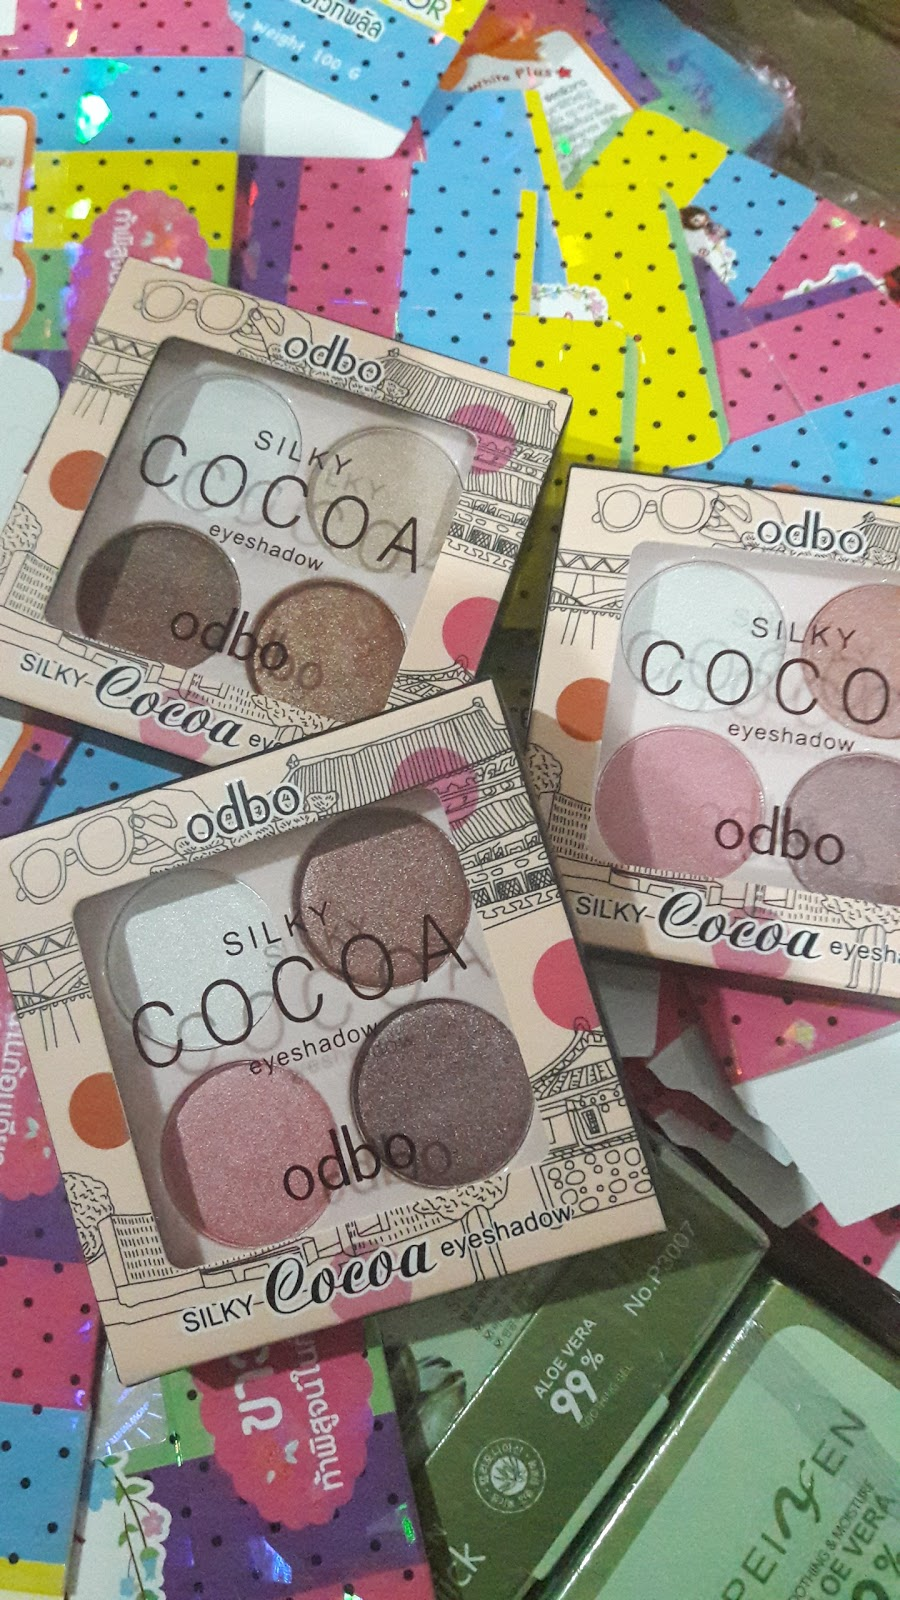 Silky Cocoa Eyeshadow By ODBO Solehah Beauty Centre